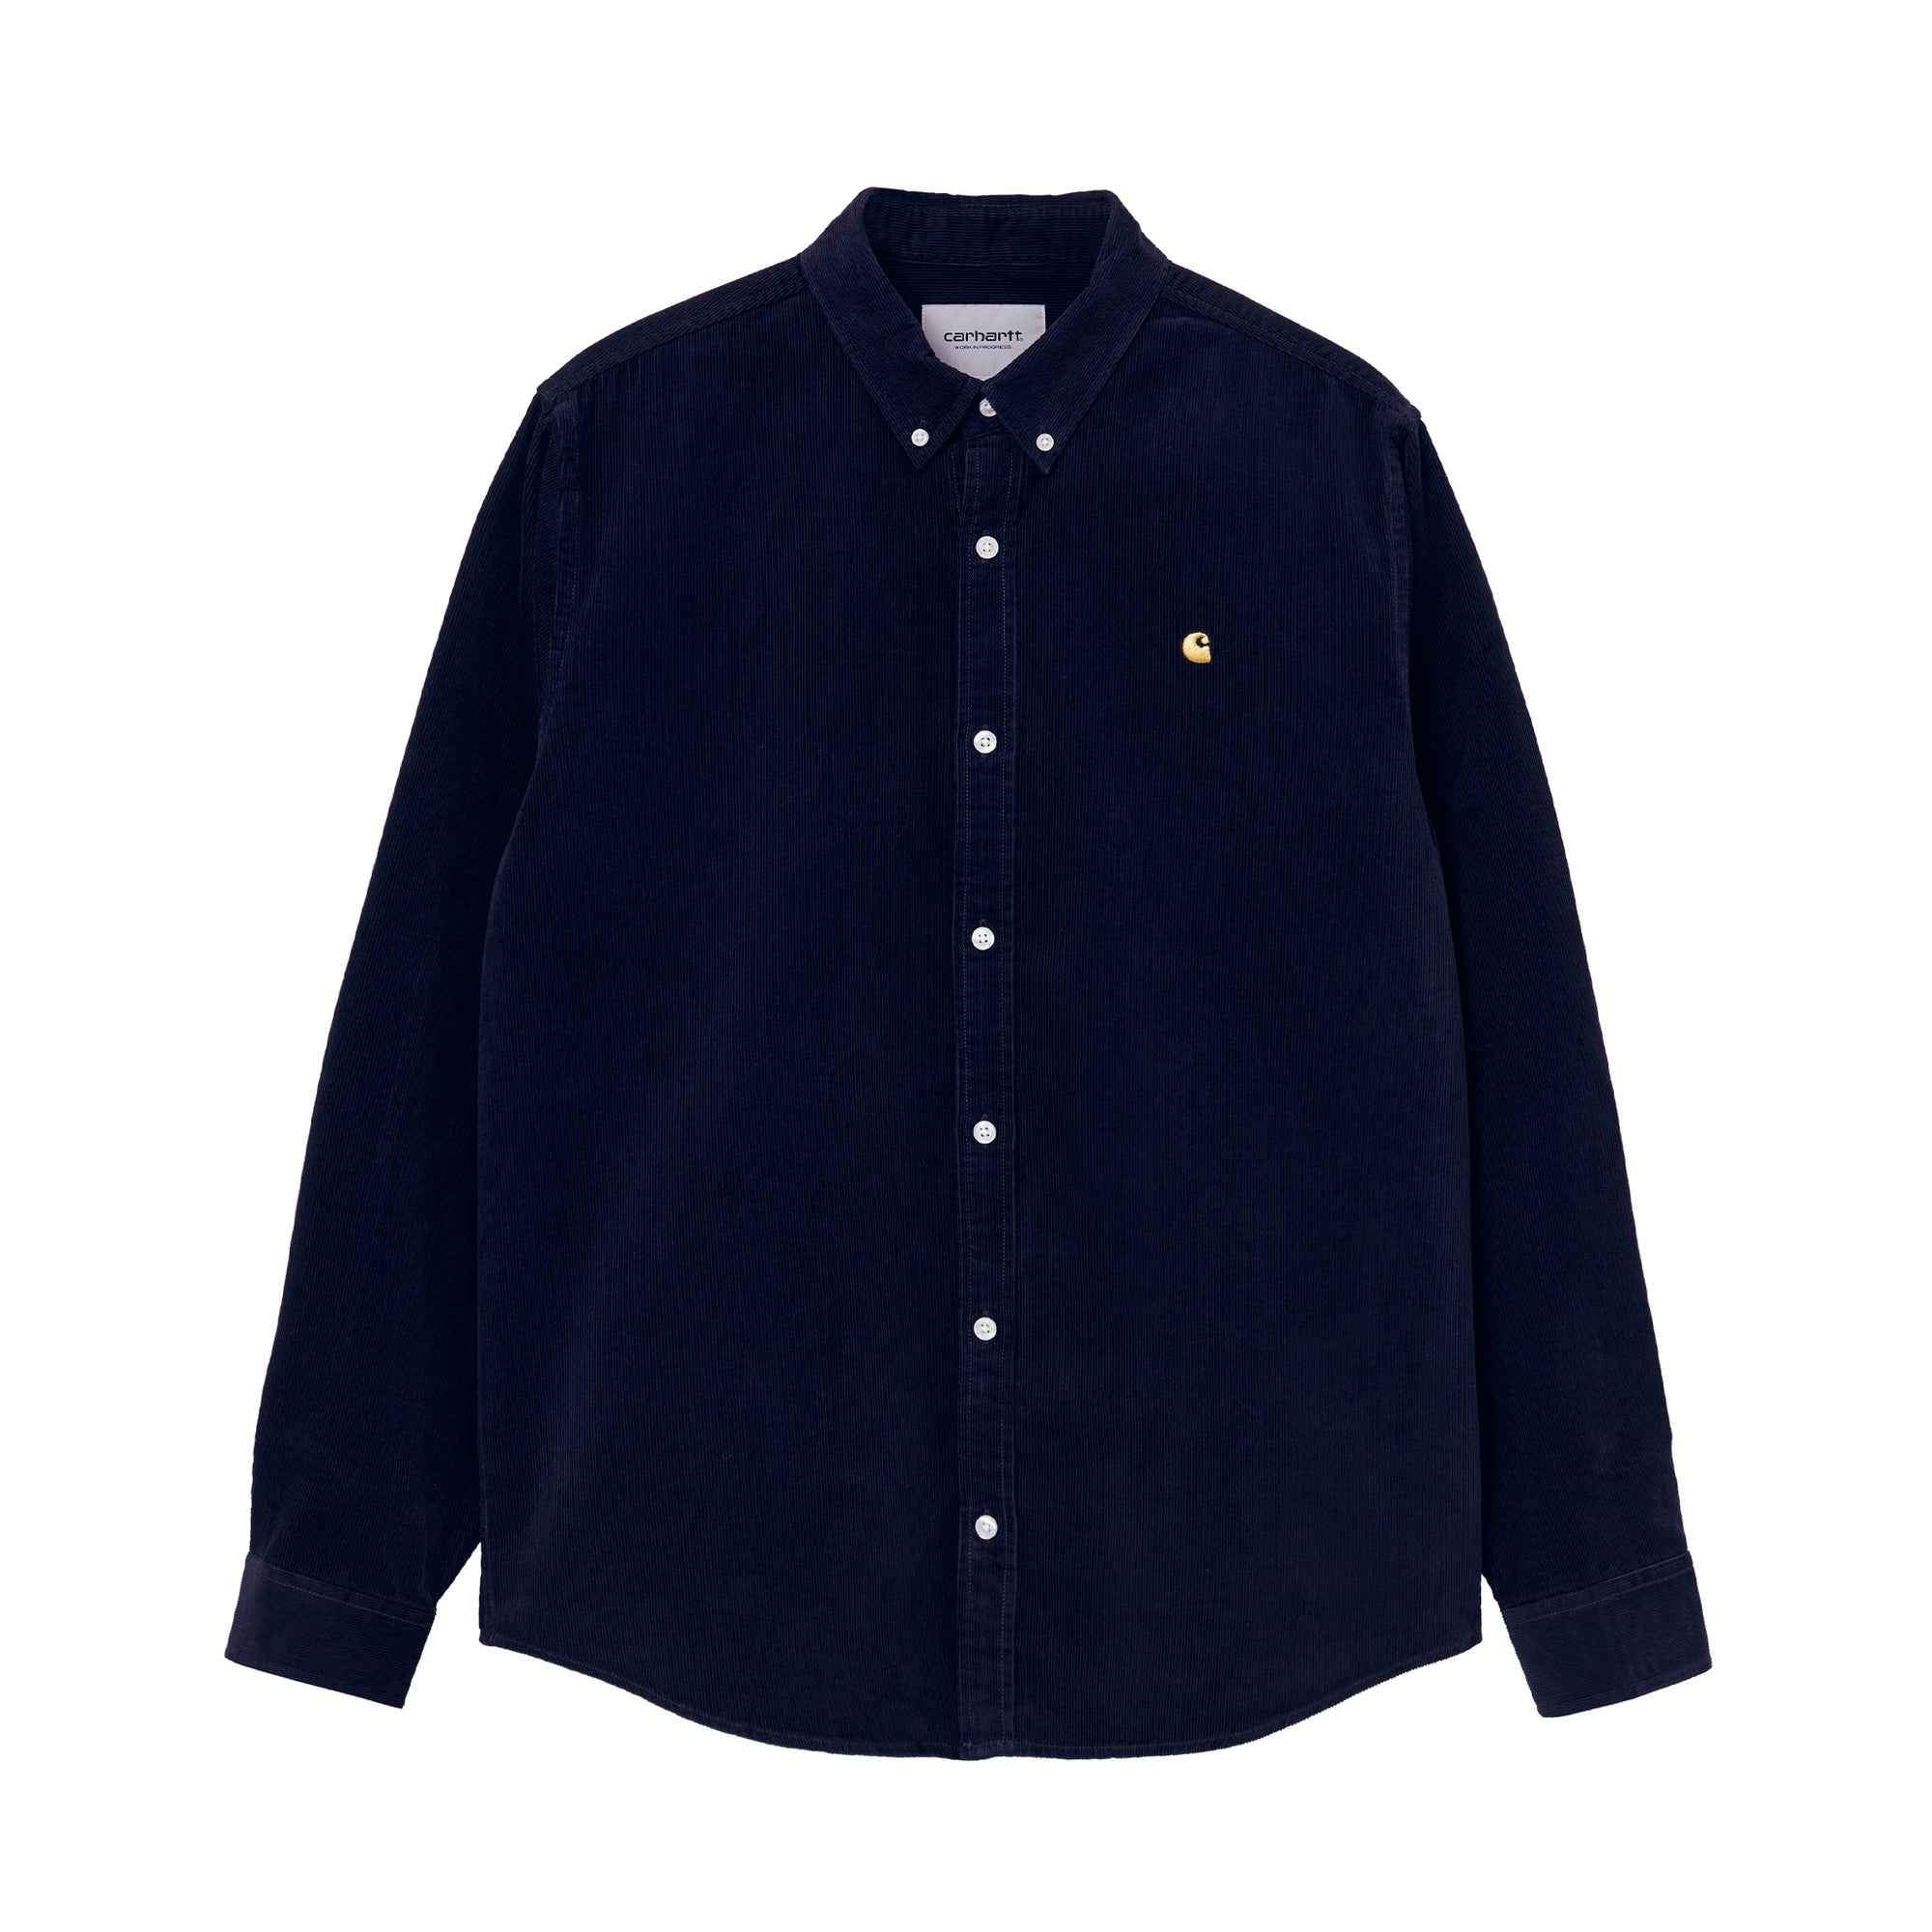 Carhartt WIP Madison Fine Cord Shirt: Dark Navy / Limoncello - The Union Project